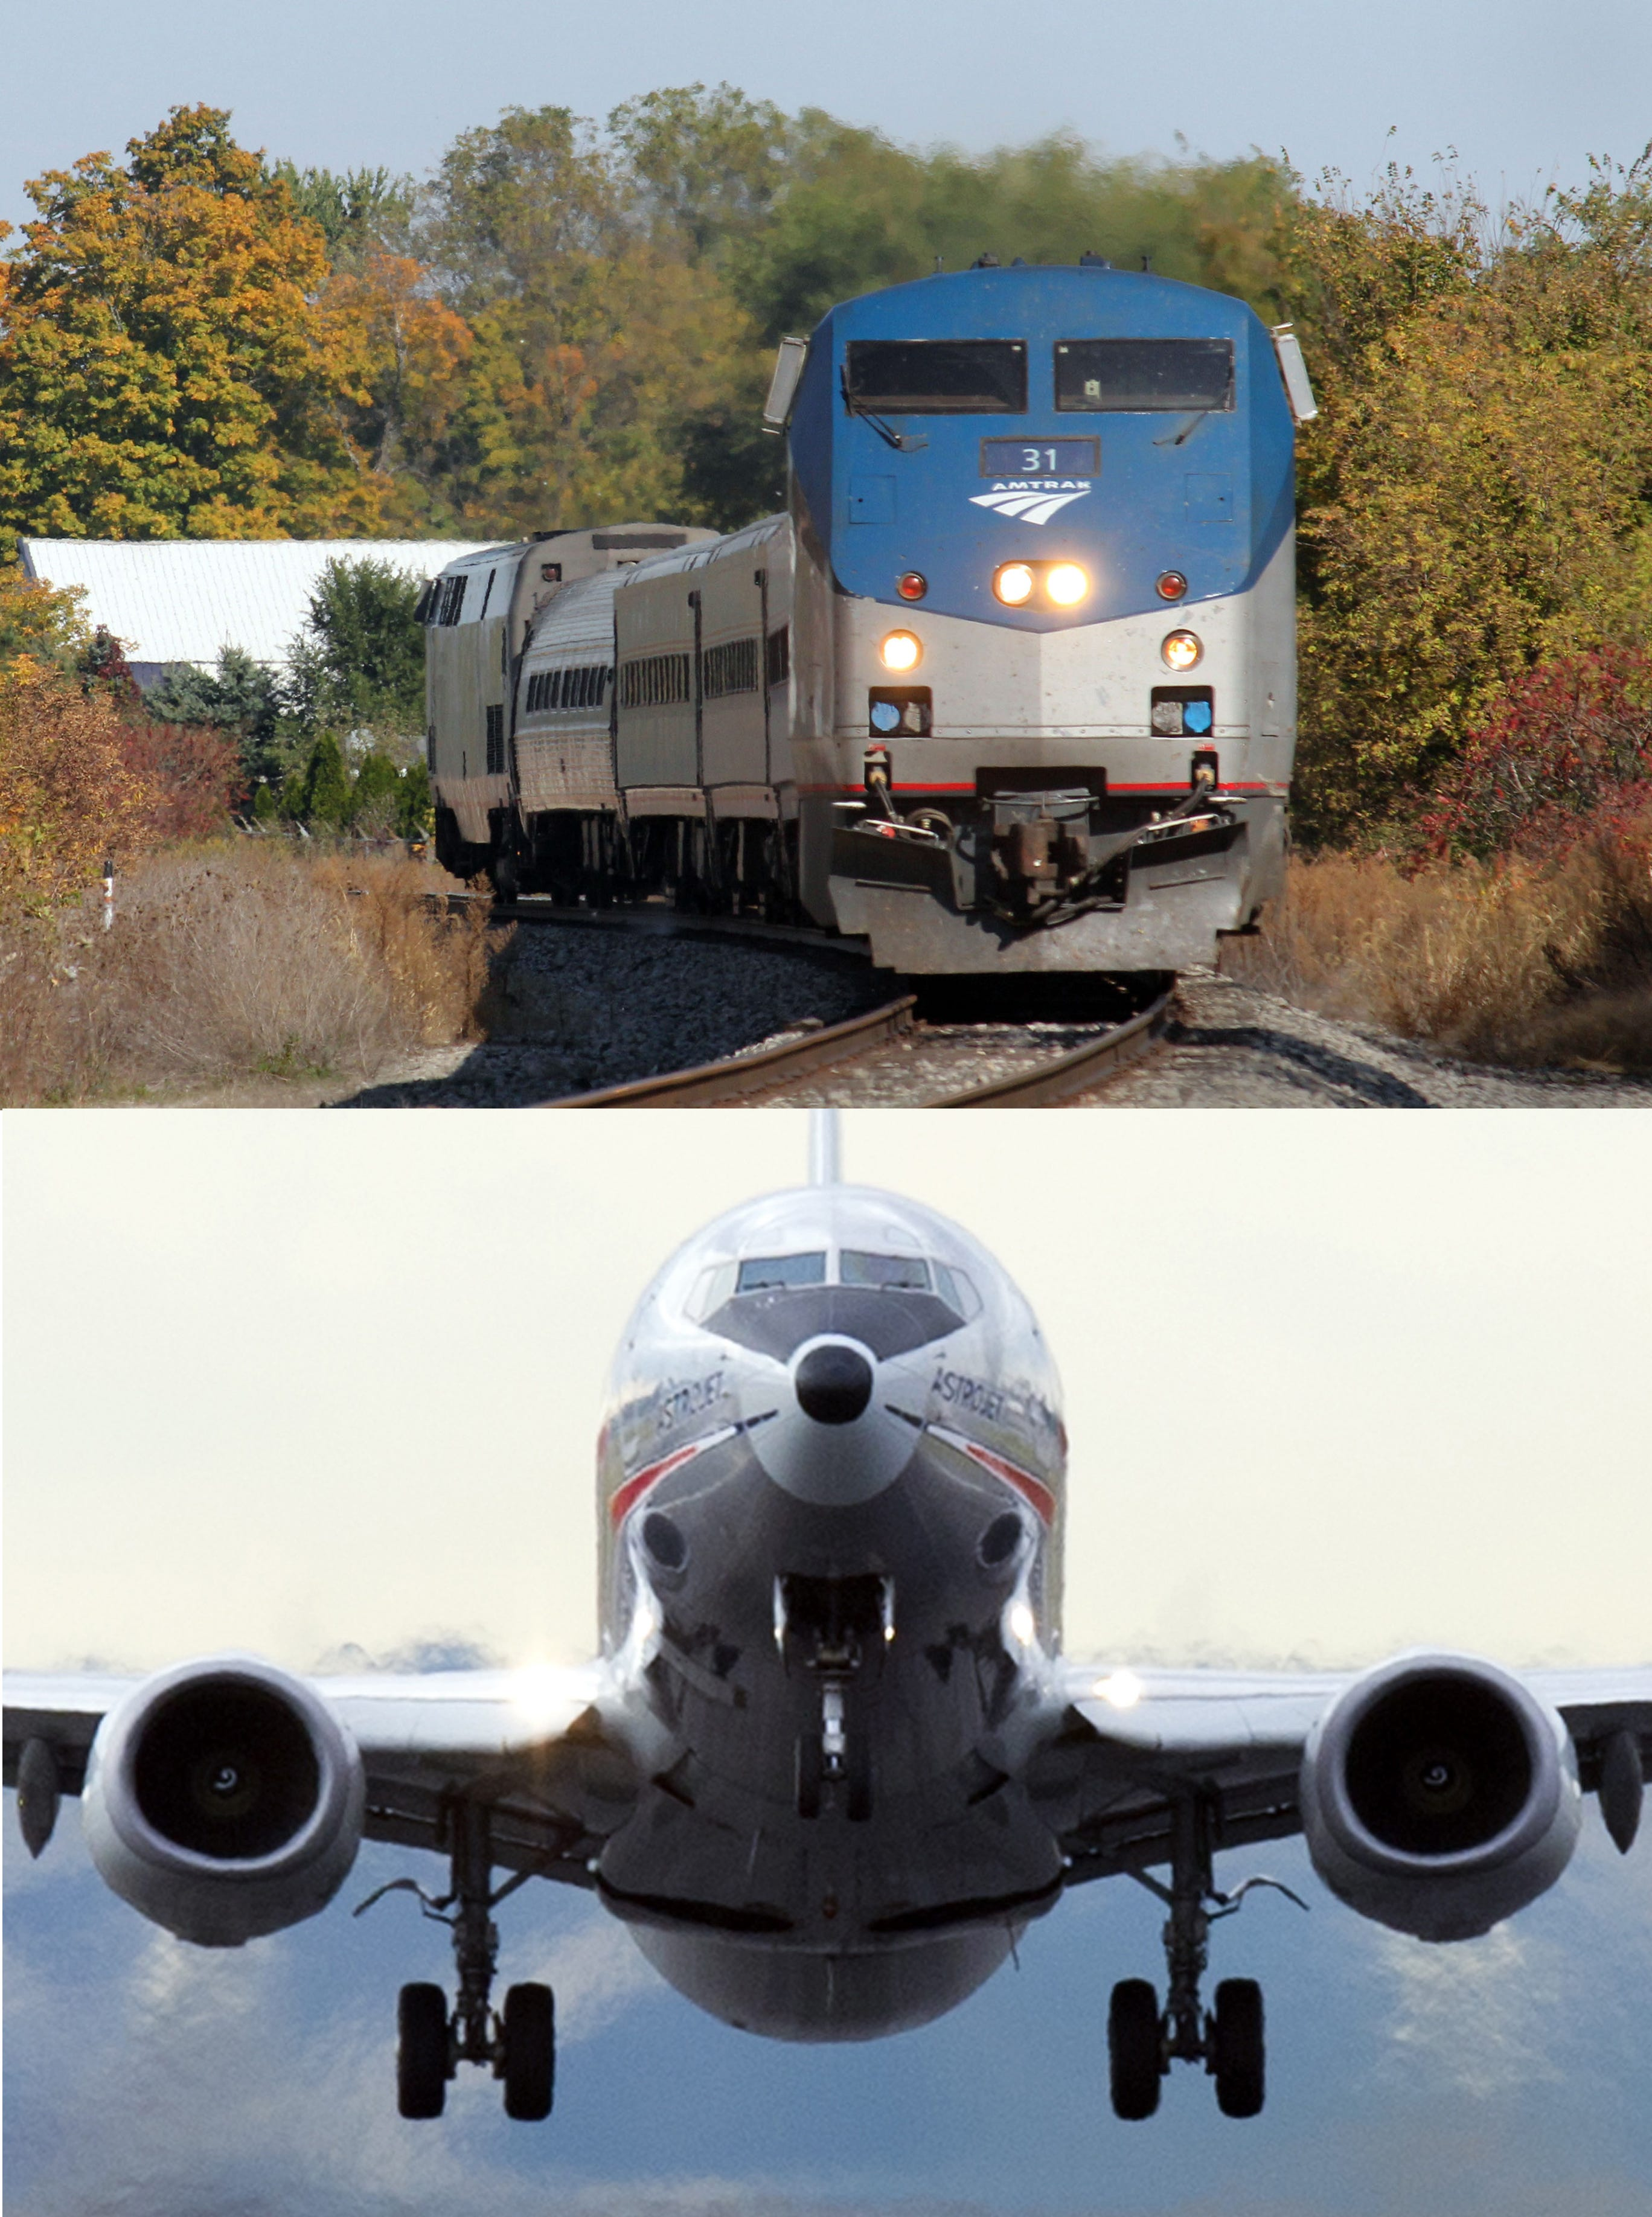 are trains safer than planes